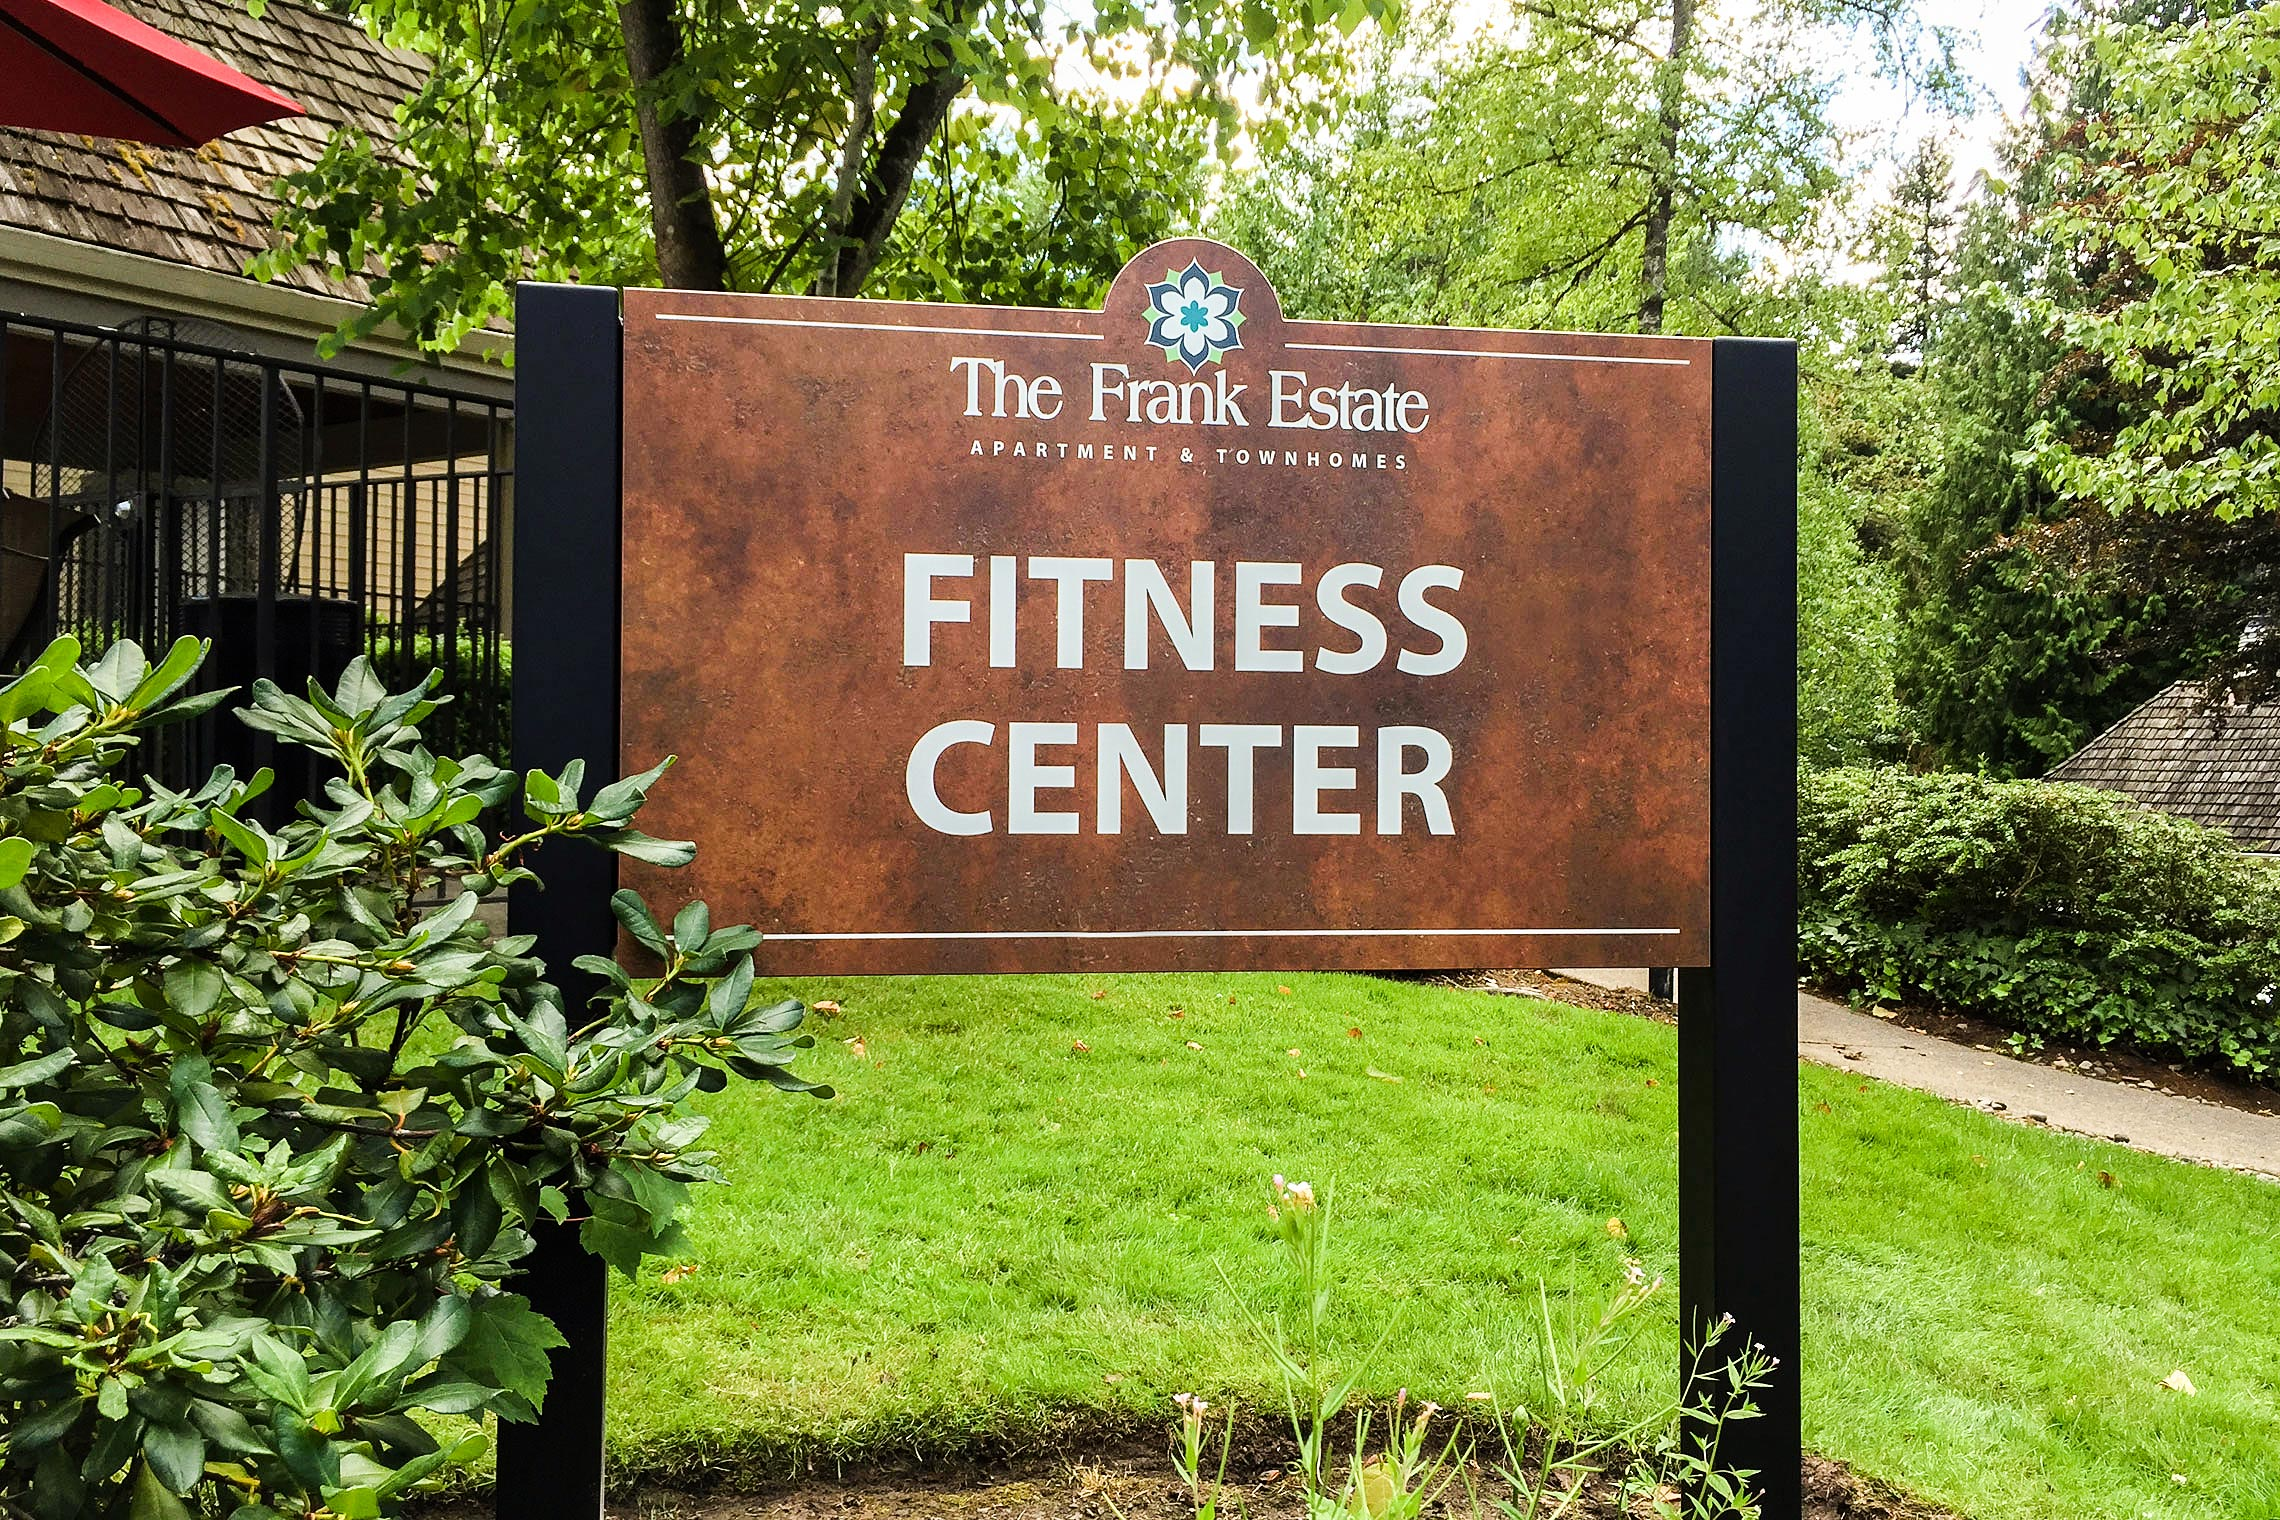 The Frank Estate Apartment & Townhomes Fitness Center ID on Post